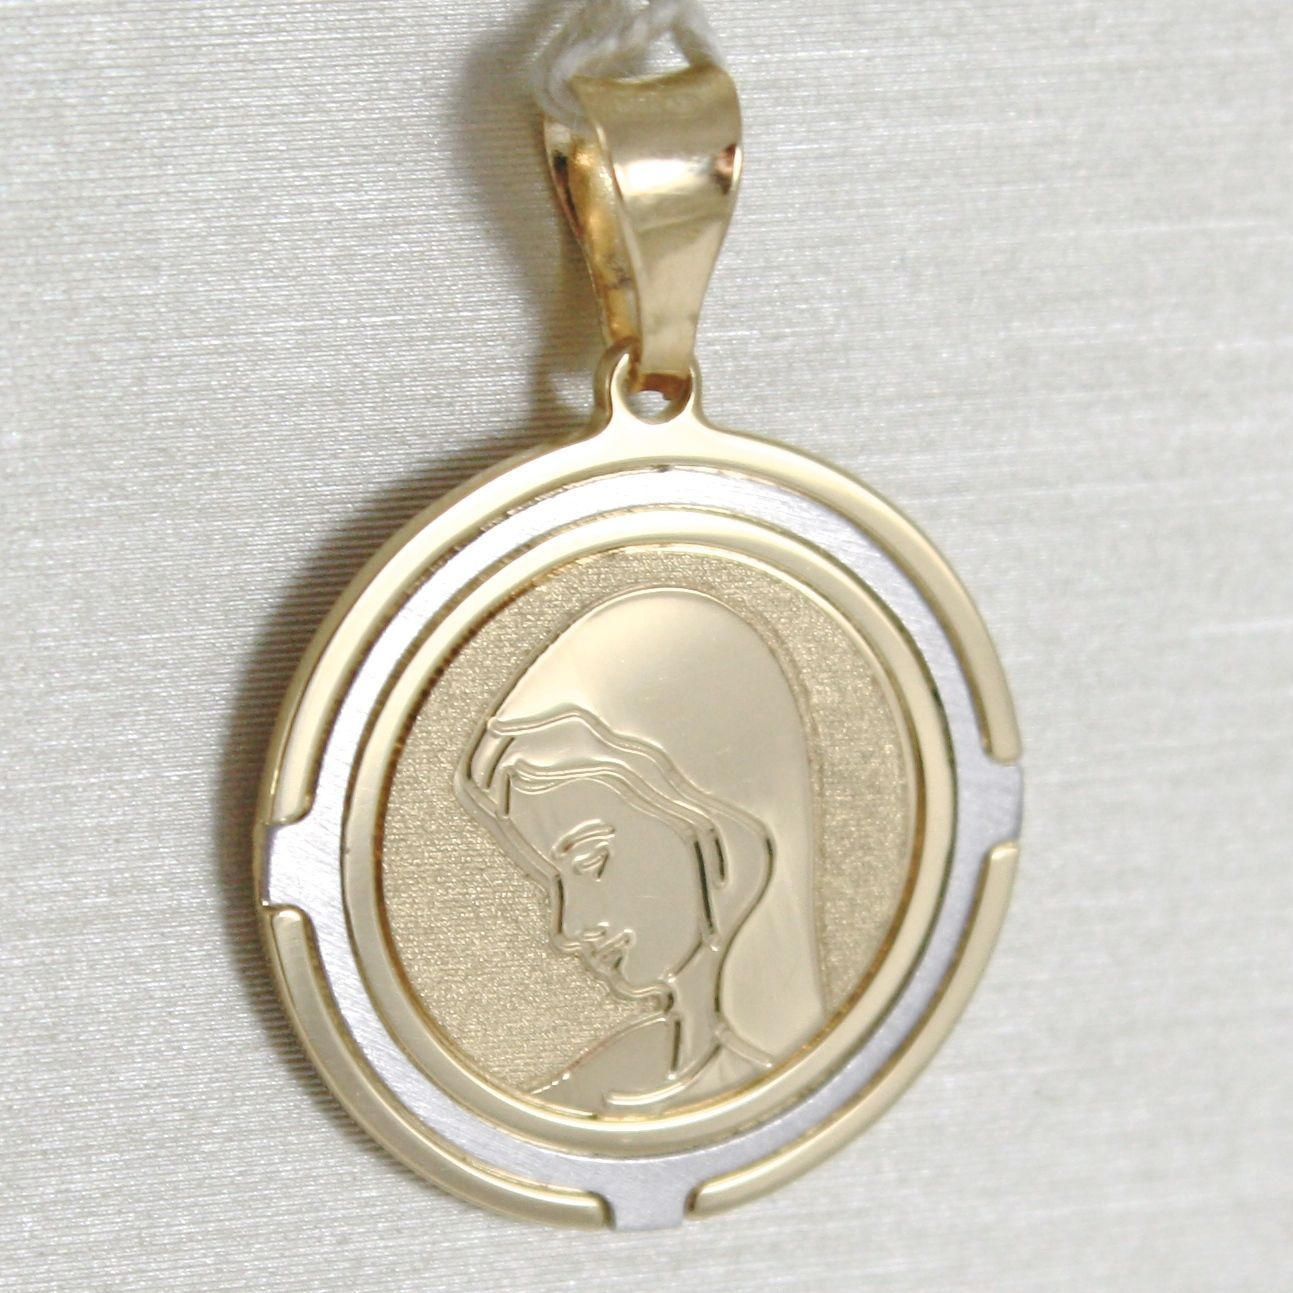 PENDANT MEDAL YELLOW GOLD WHITE 750 18K, MADONNA, VIRGO MARY JANE, SOLID